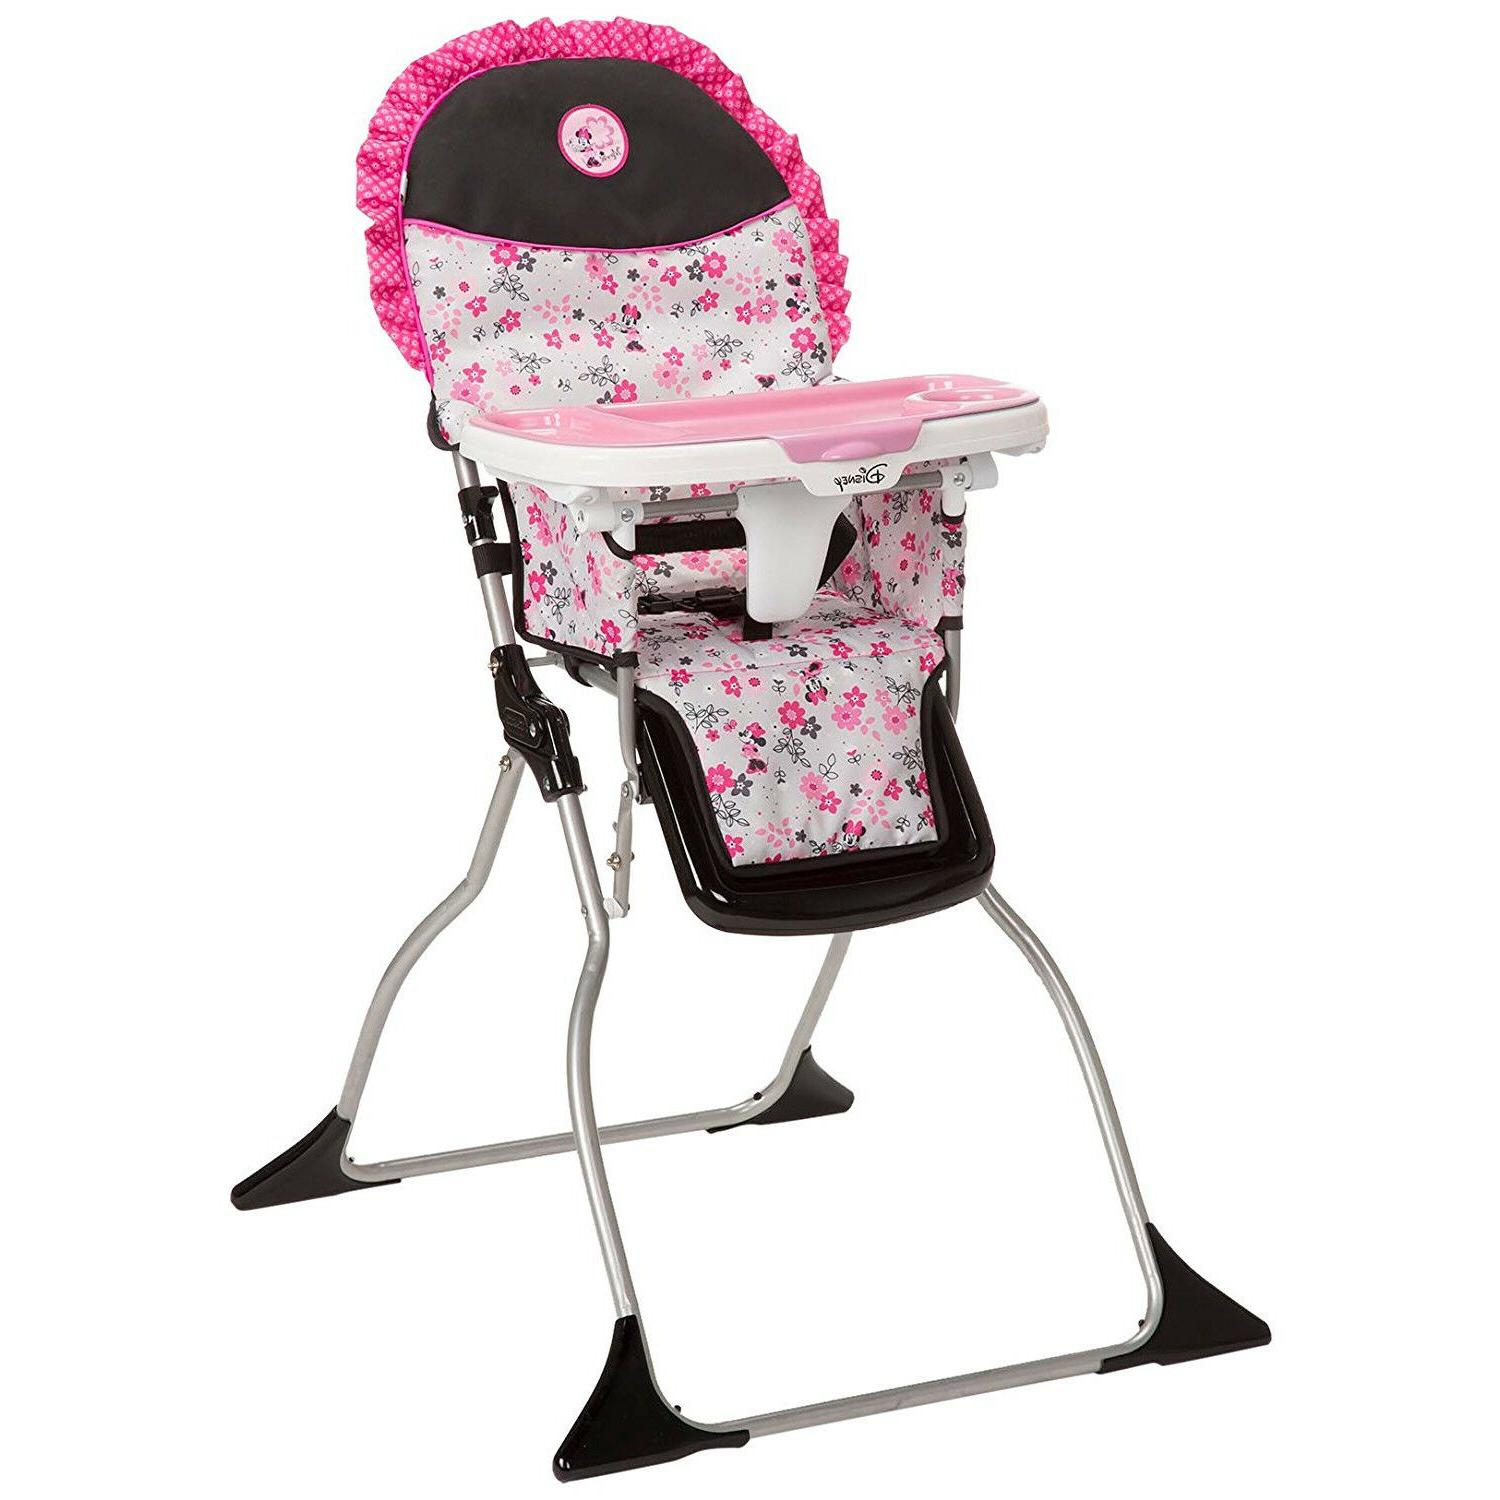 Pink Feeding High Chair Tray Strap Minnie Mouse Seat New